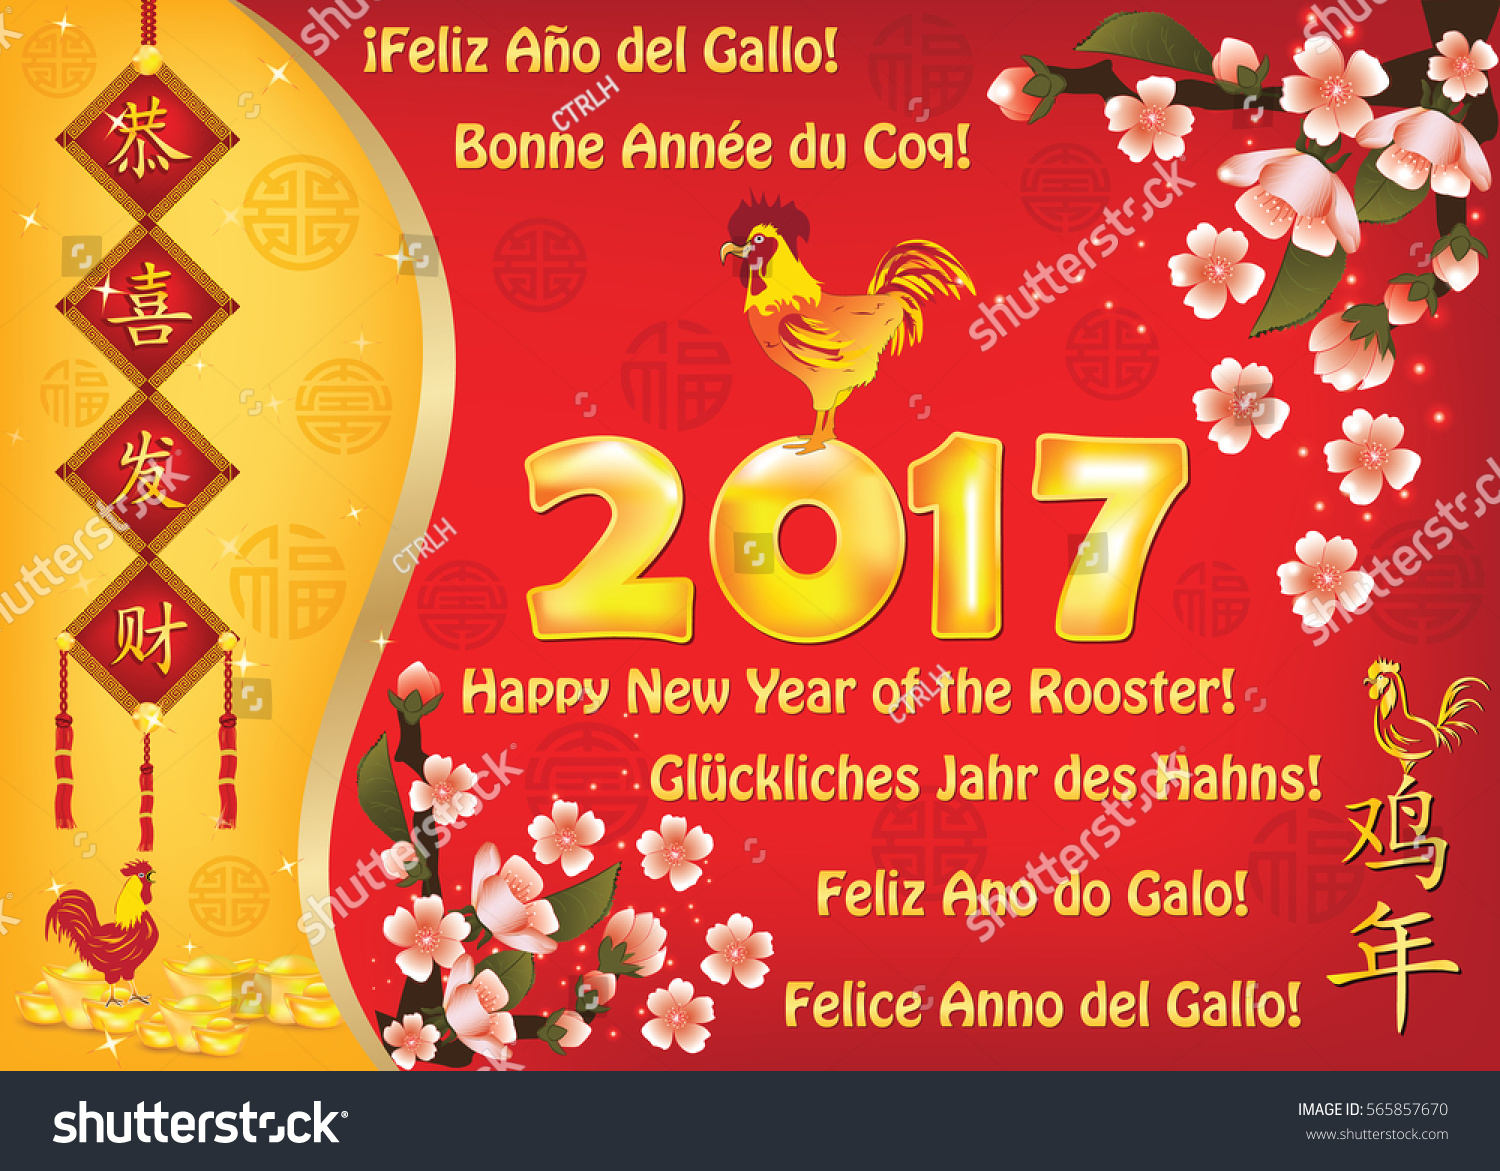 How to write a New Year card in Chinese